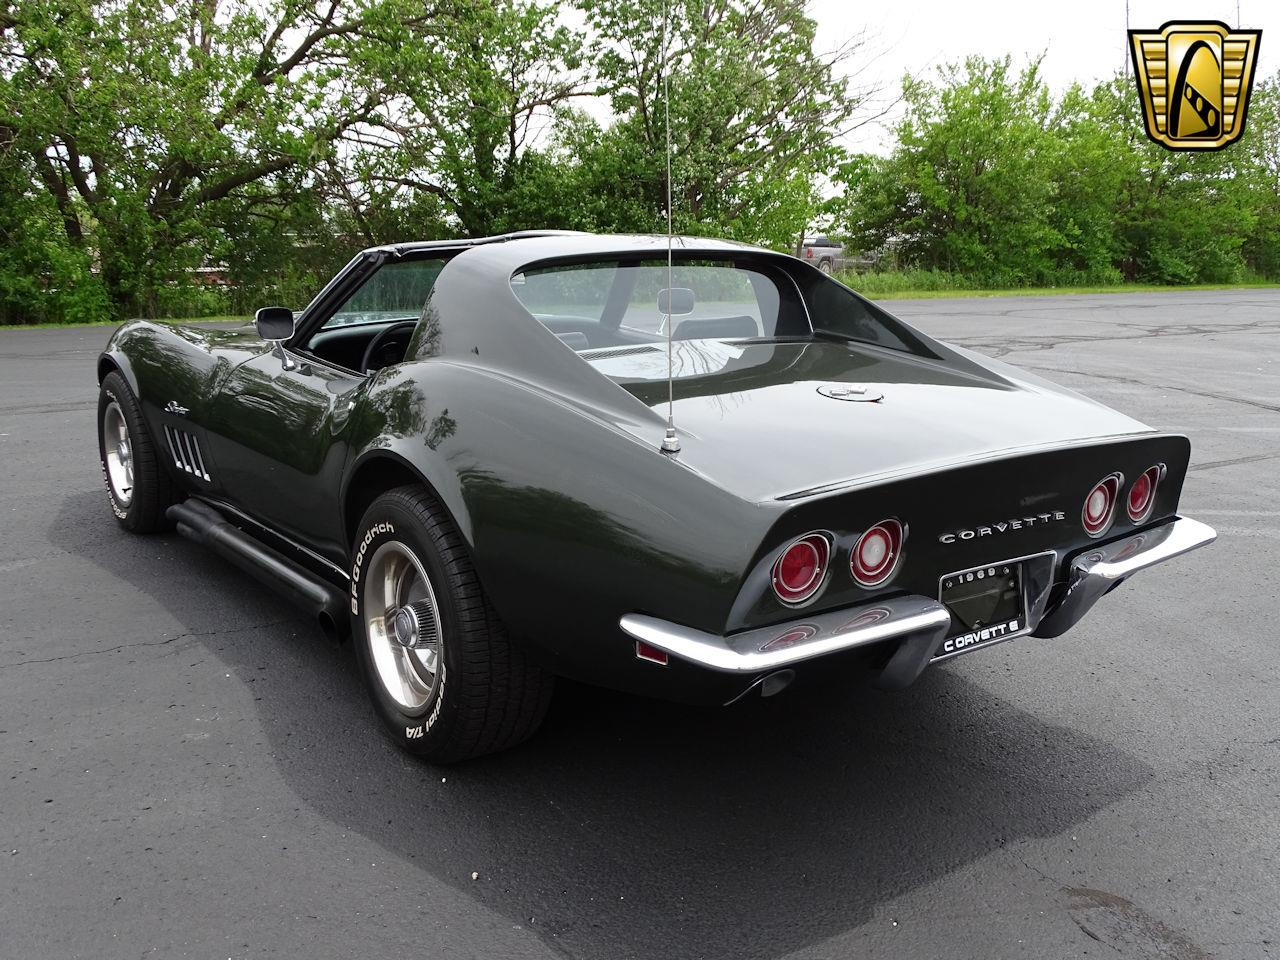 Large Picture of 1969 Chevrolet Corvette located in Indiana - $32,595.00 - L6RX